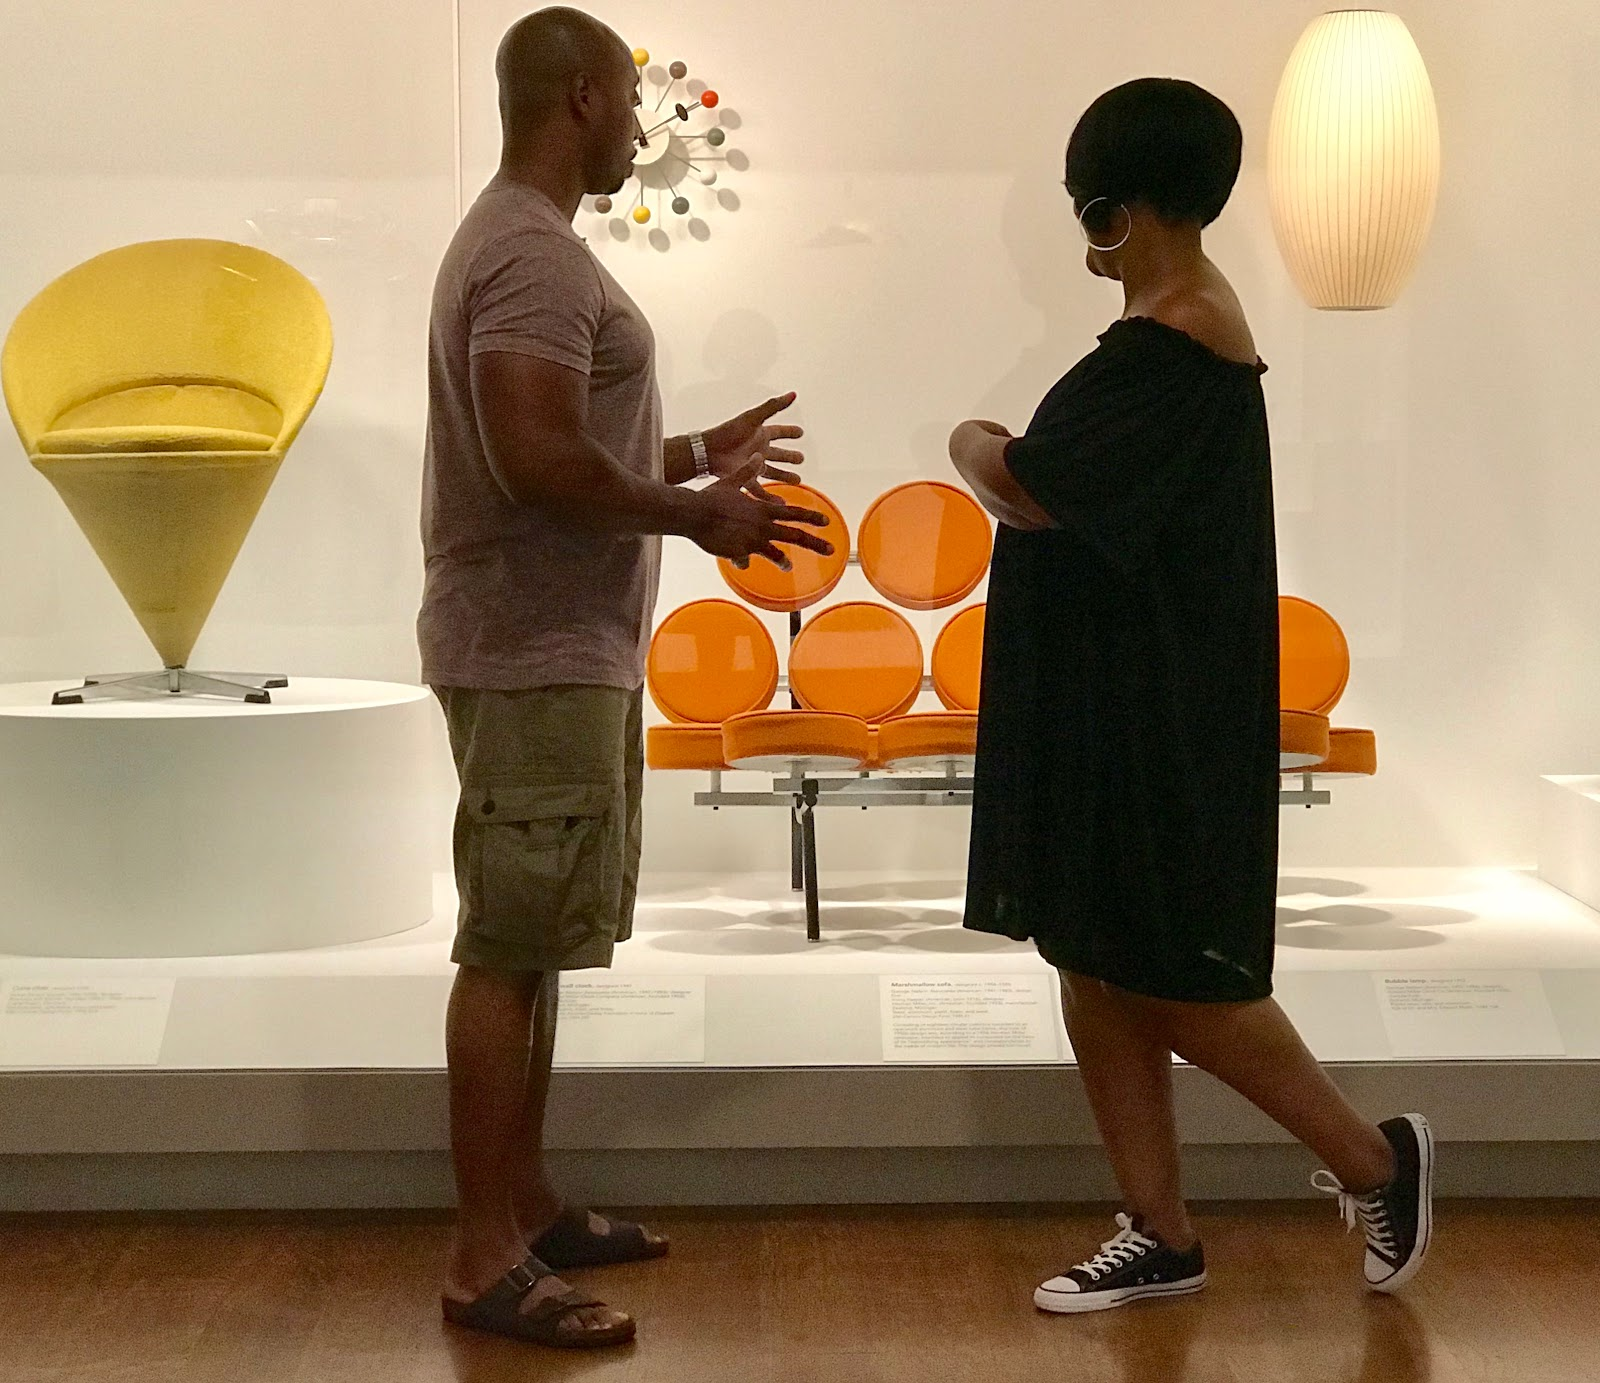 Couple enjoying the retro art at Dallas Museum.You will also find me and my bae (husband) in the retro, modern and back in the day furniture section. I have a fetish with orange colors. Our whole apartment is done in fall colors all year round. And I do not think I will ever change because the bright color makes me happy.